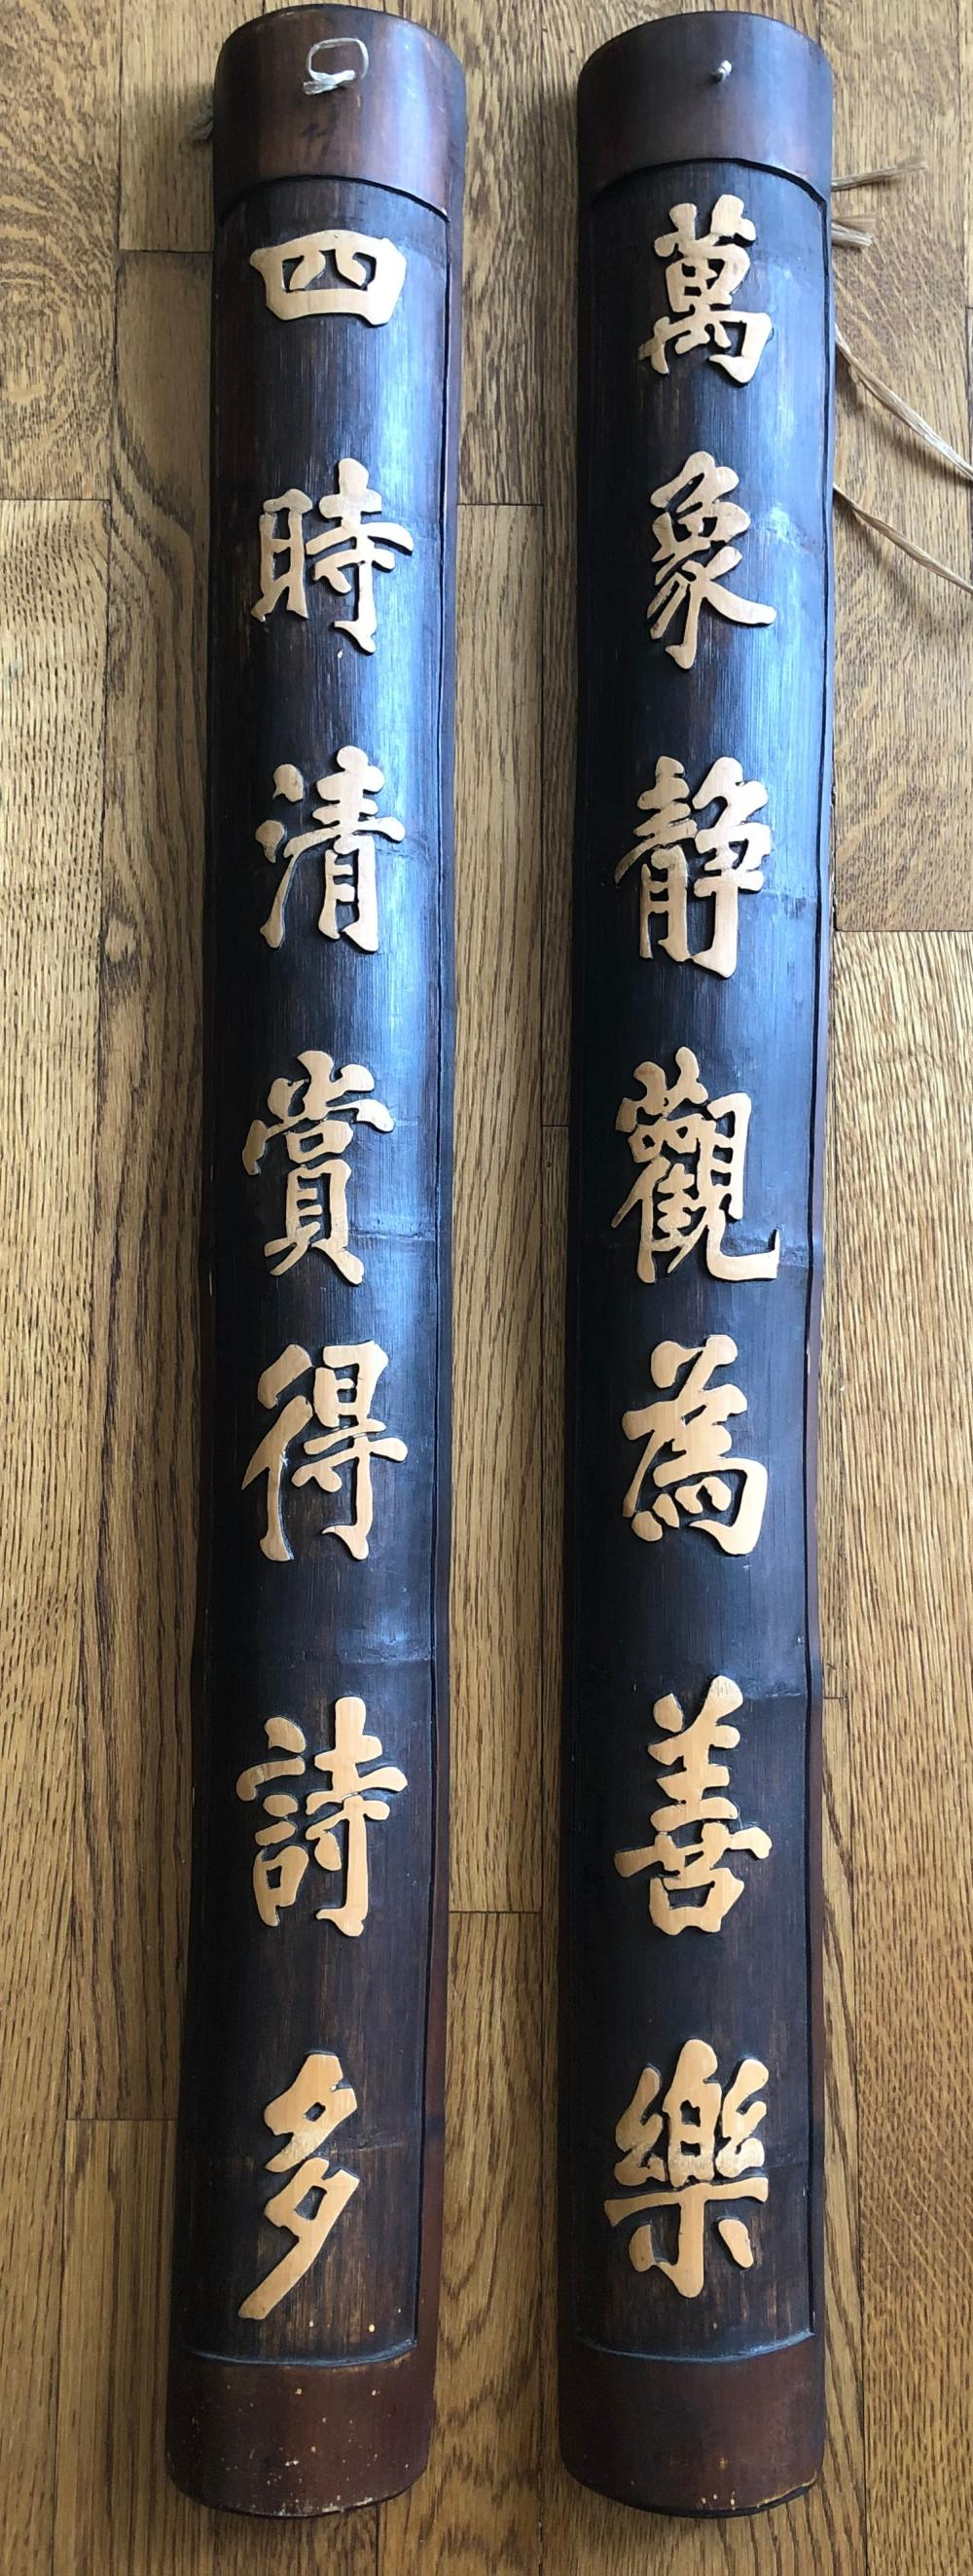 Pair of Antique Chinese bamboo wall hangings with